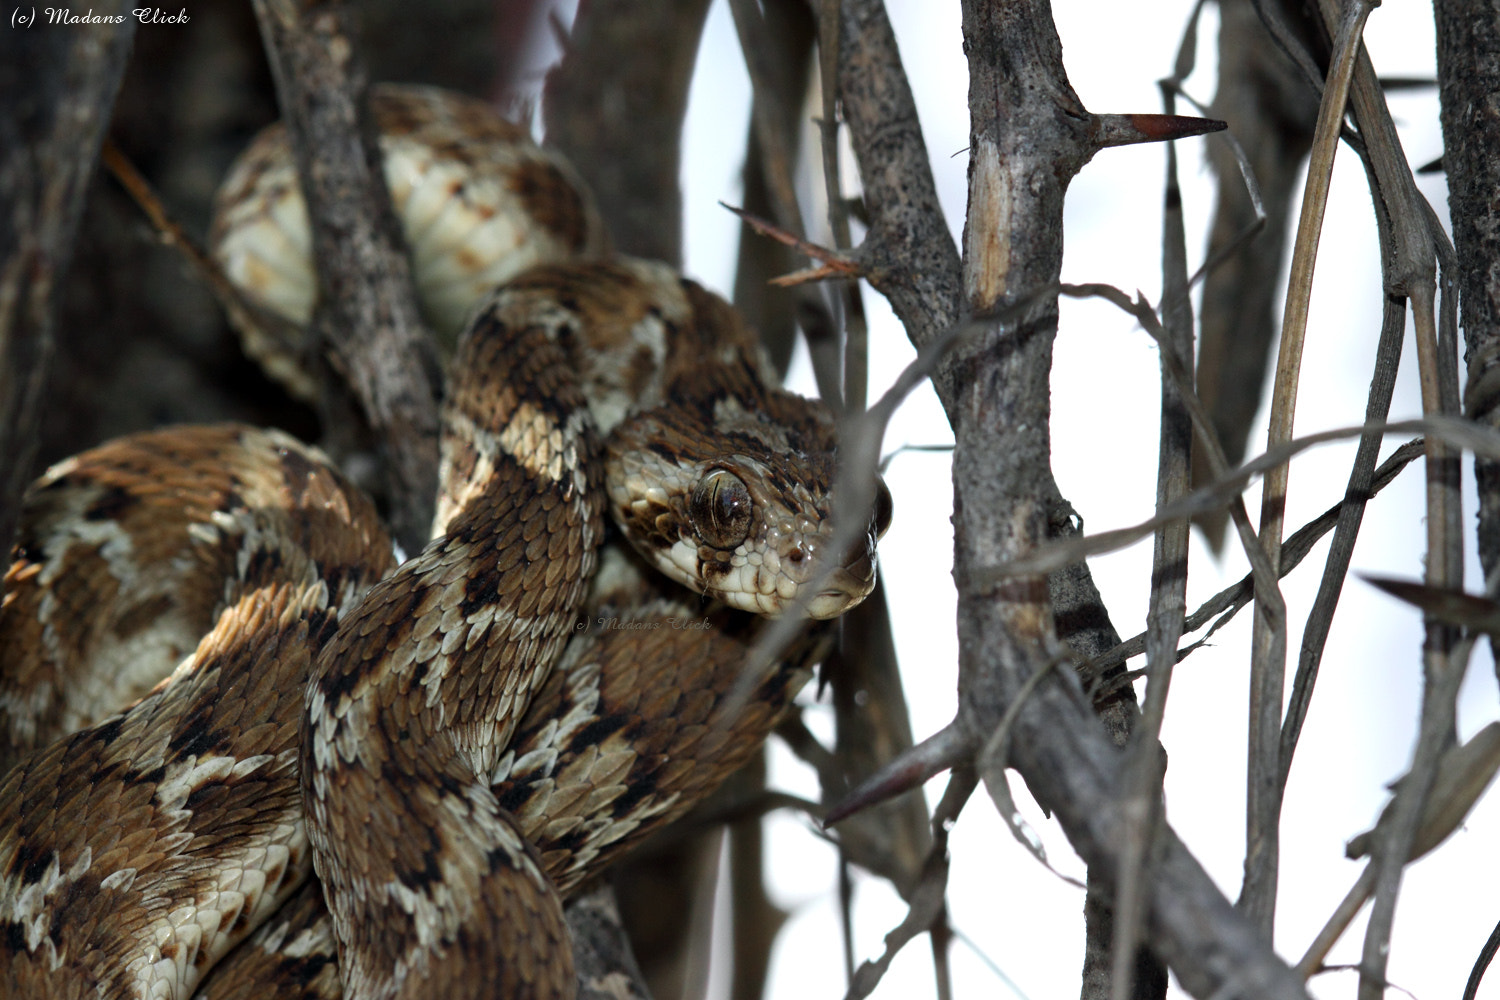 Photograph Saw Scaled Viper - Highly Venomous by Madan GC on 500px